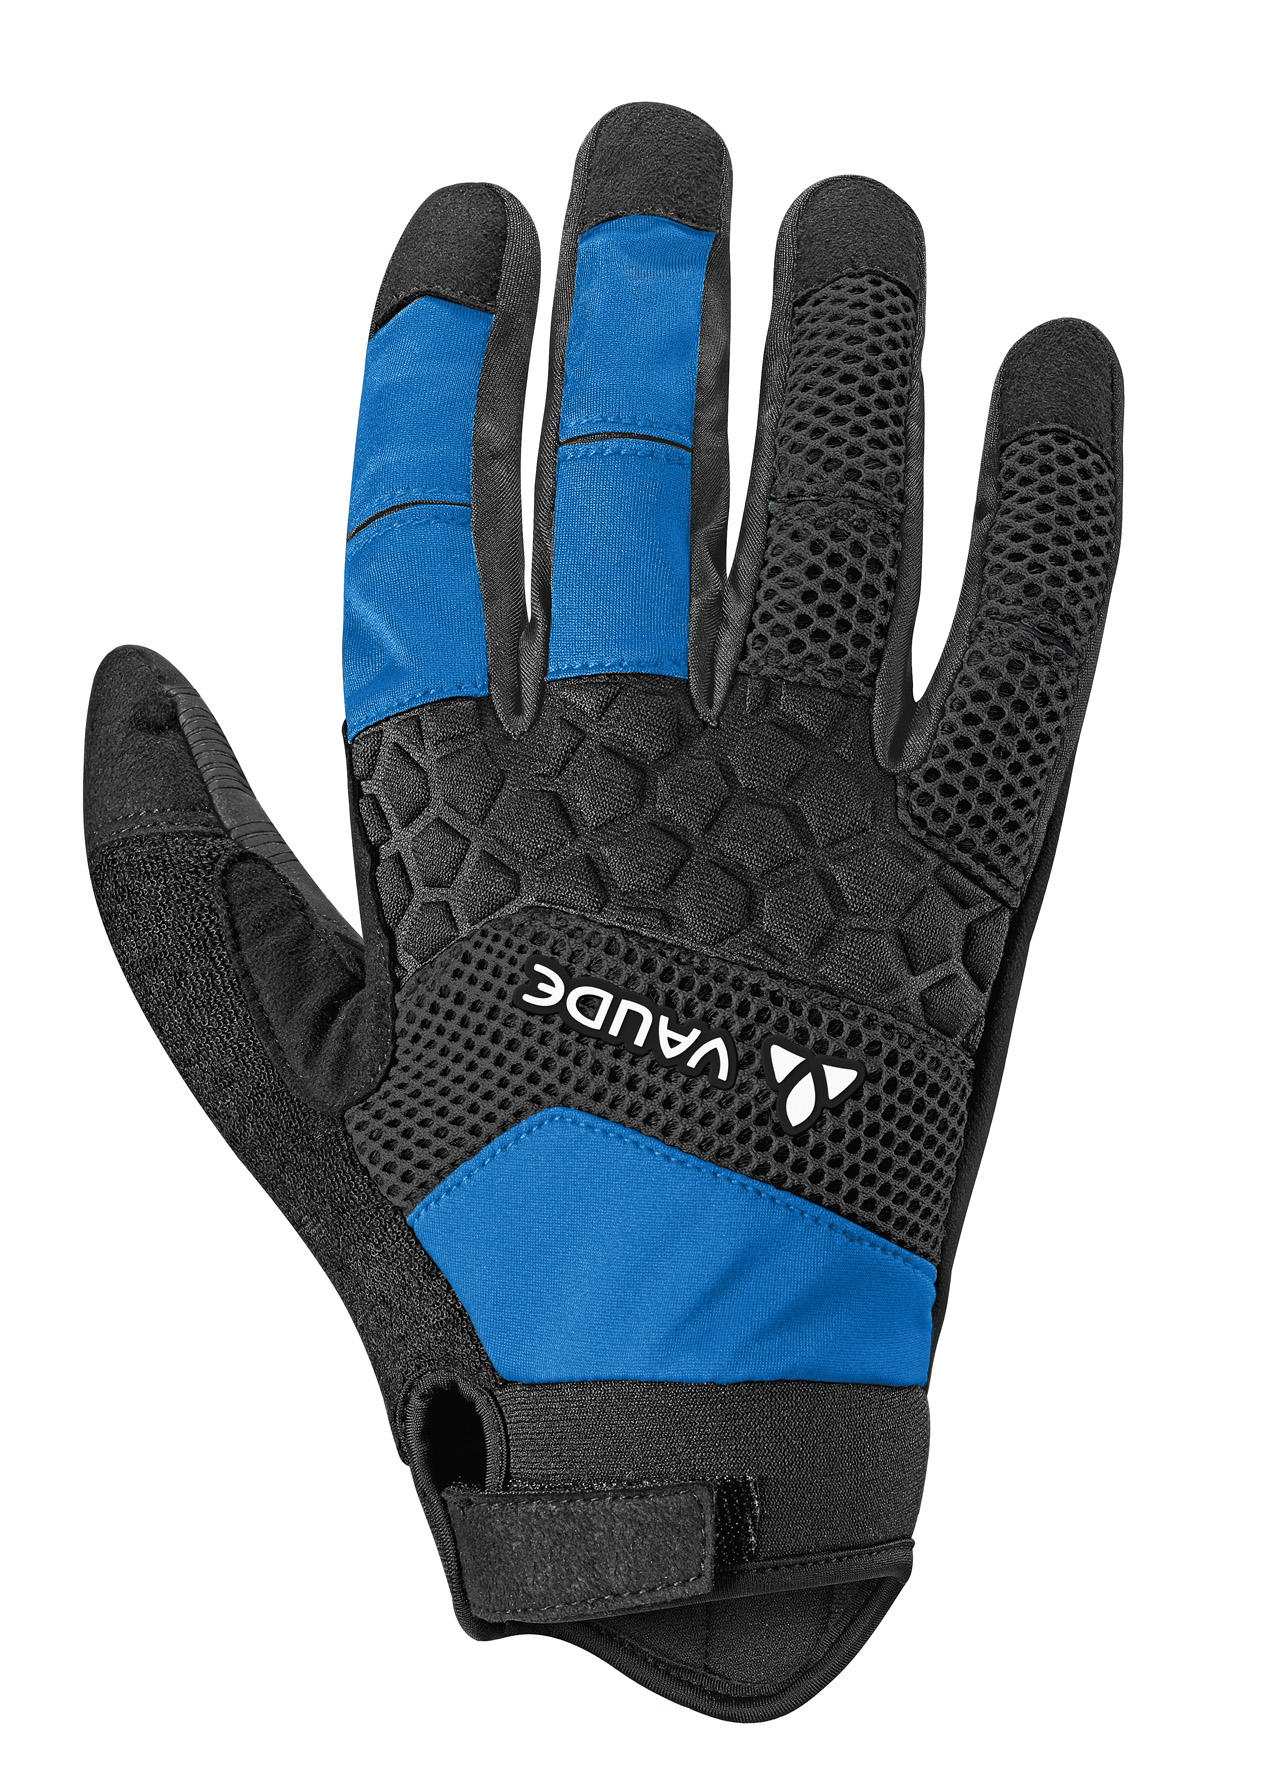 Men´s Cardo Gloves hydro blue Größe 5 - schneider-sports